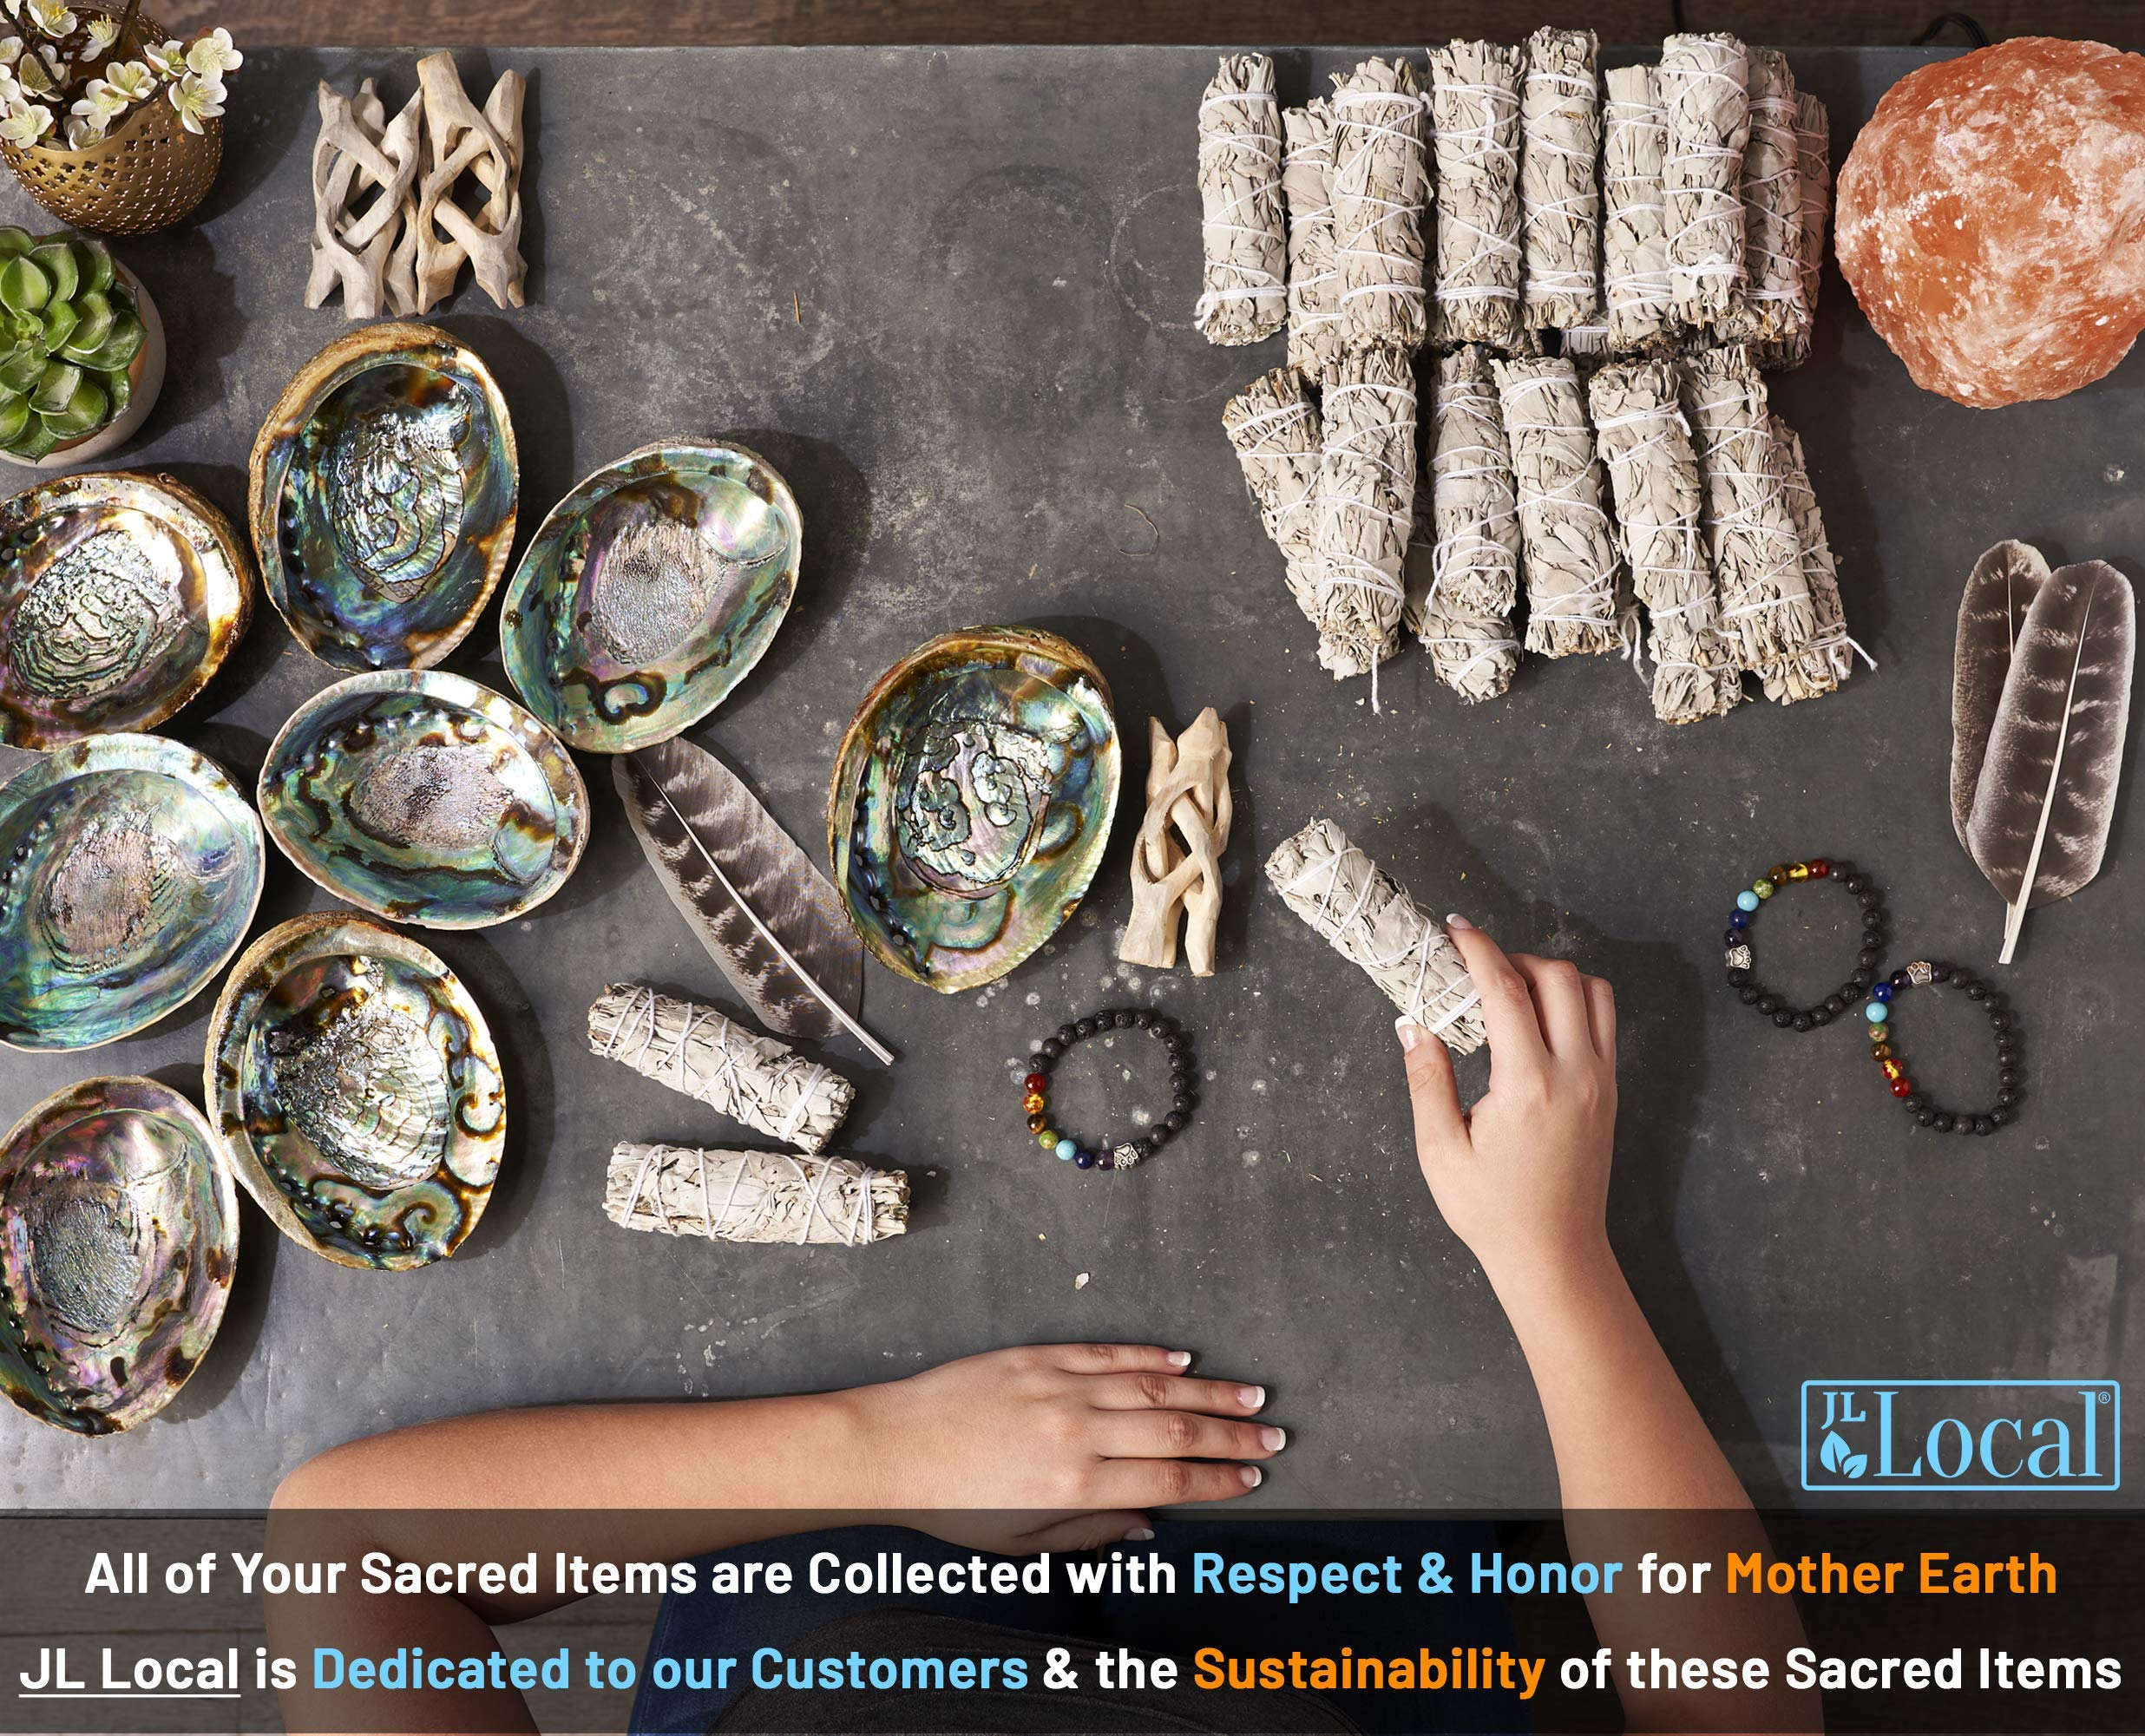 JL Local 3 White Sage Smudge Gift Kit - Abalone Shell, Feather, Stand, Instructions & More - Smudging, Cleansing, Healing & Stress Relief by JL Local (Image #3)